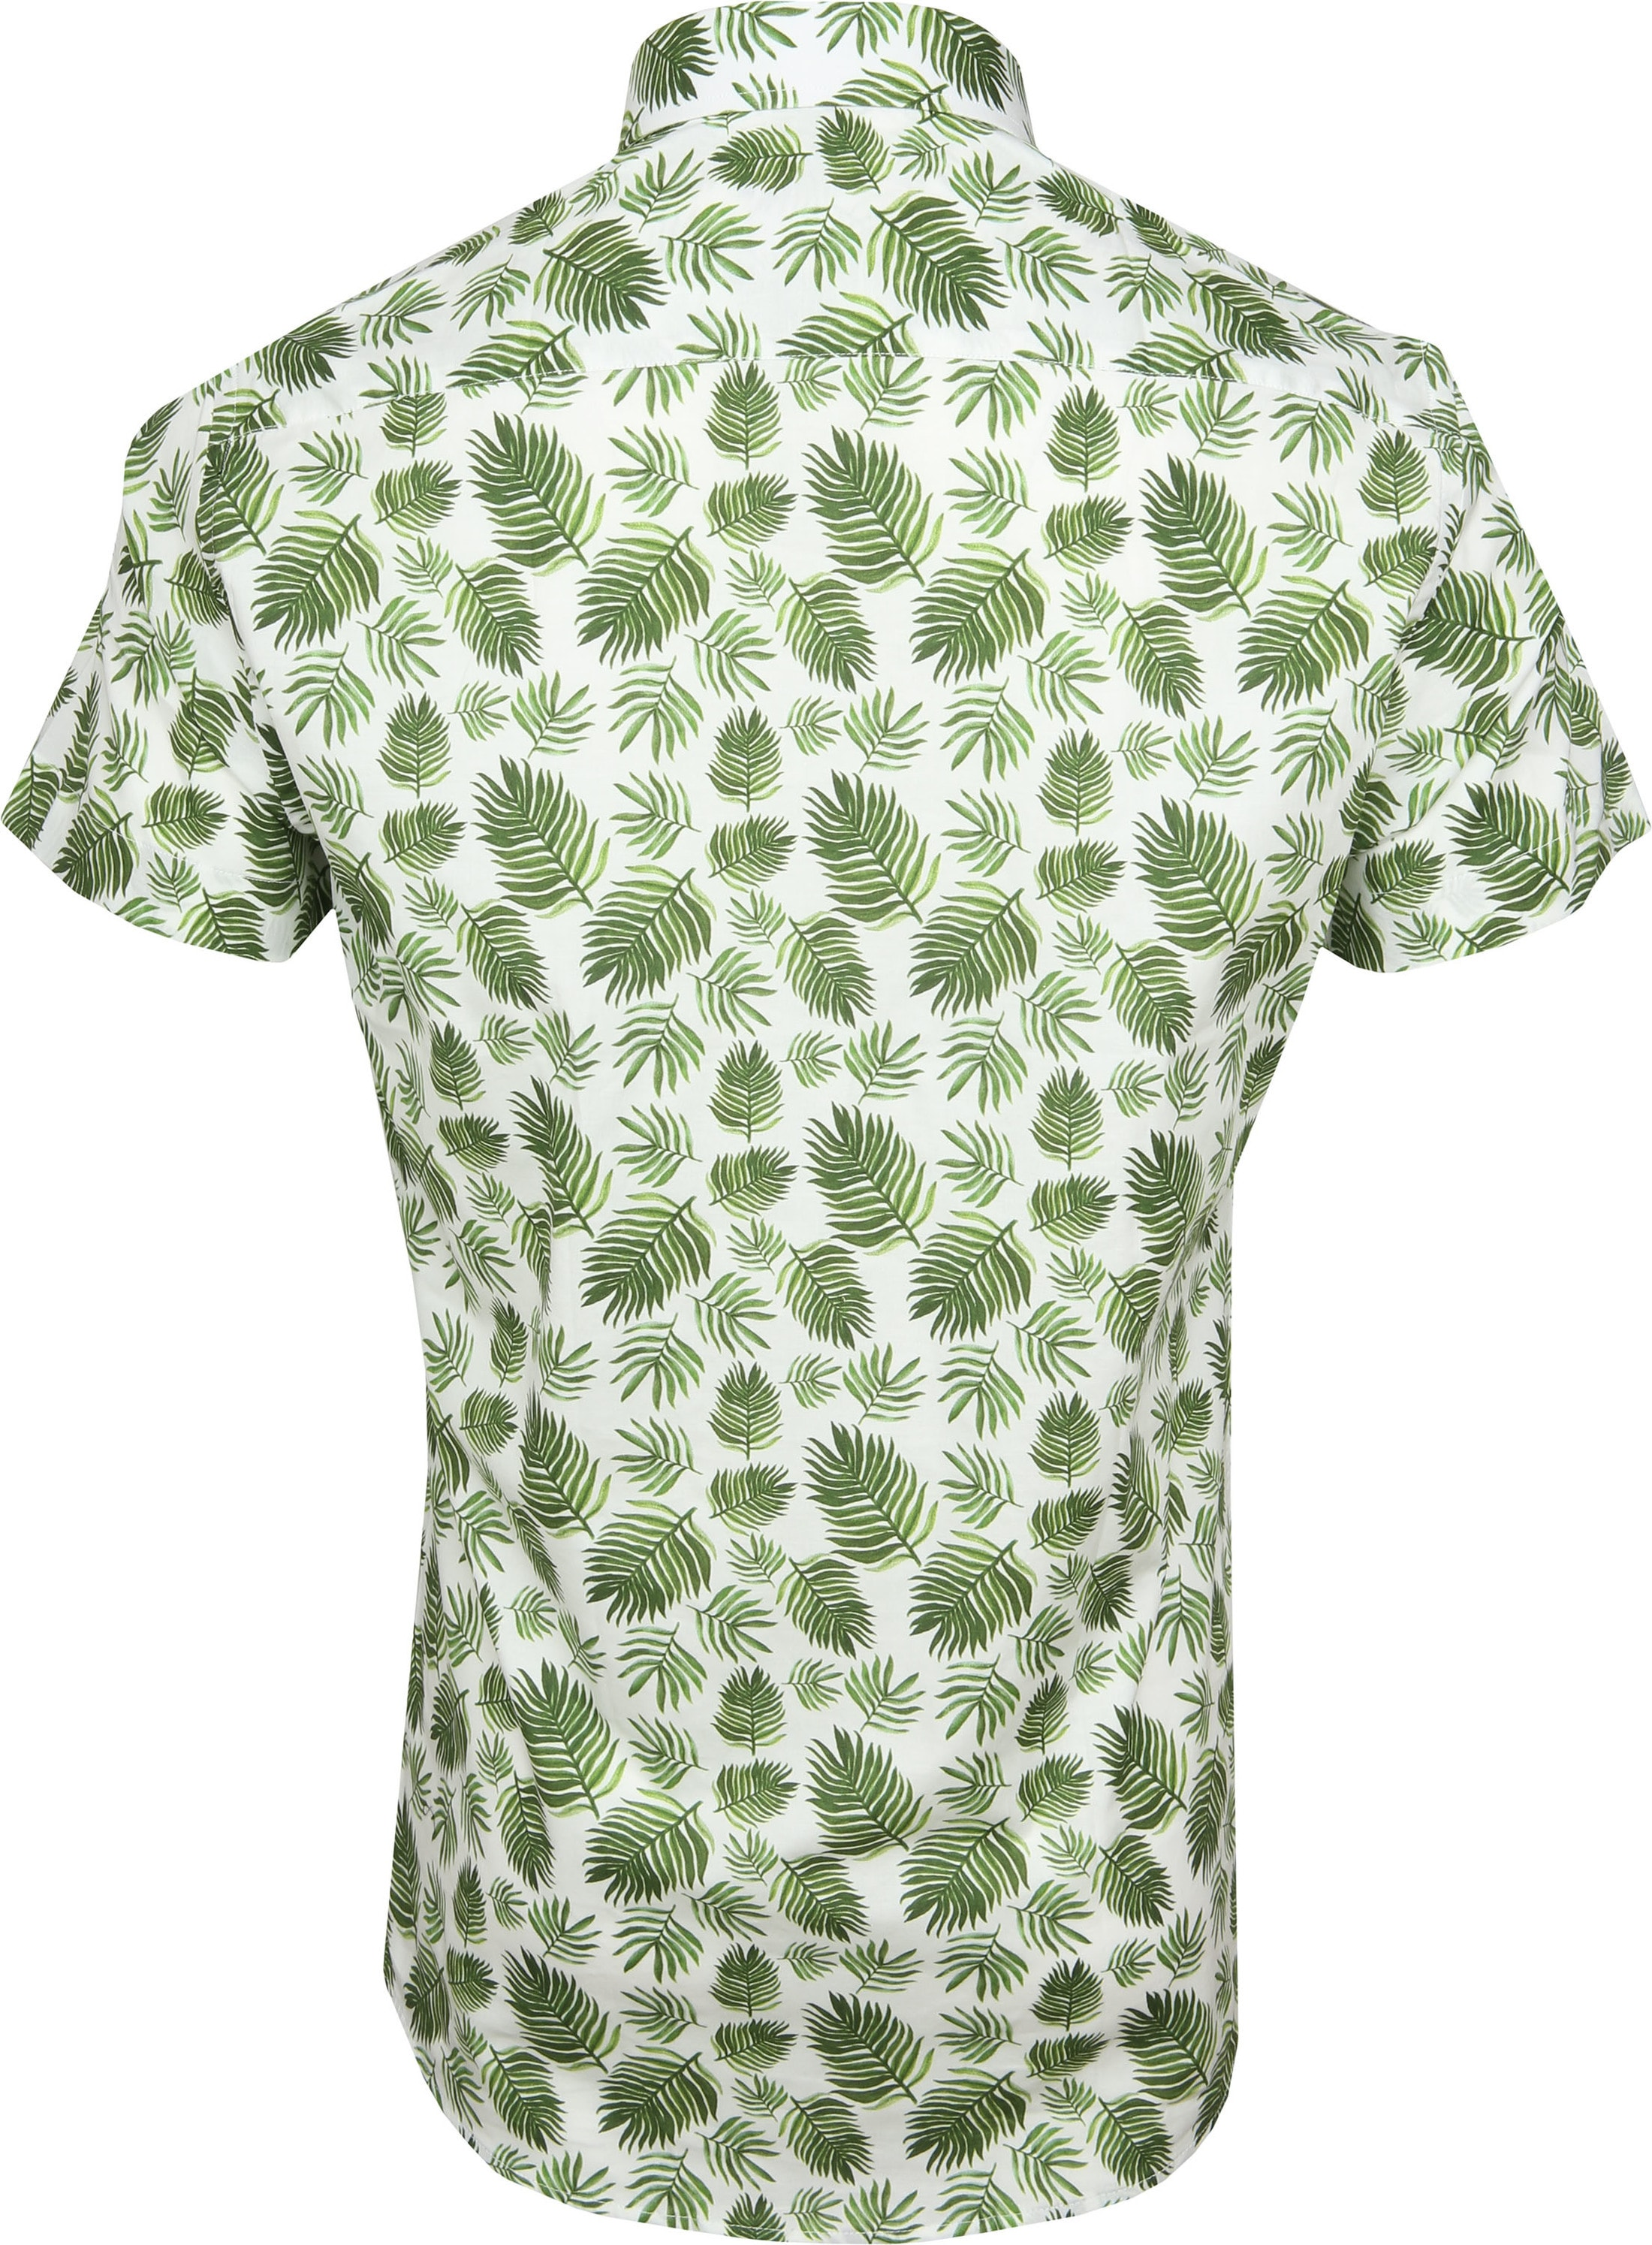 Suitable Shirt SS Varen Green foto 3